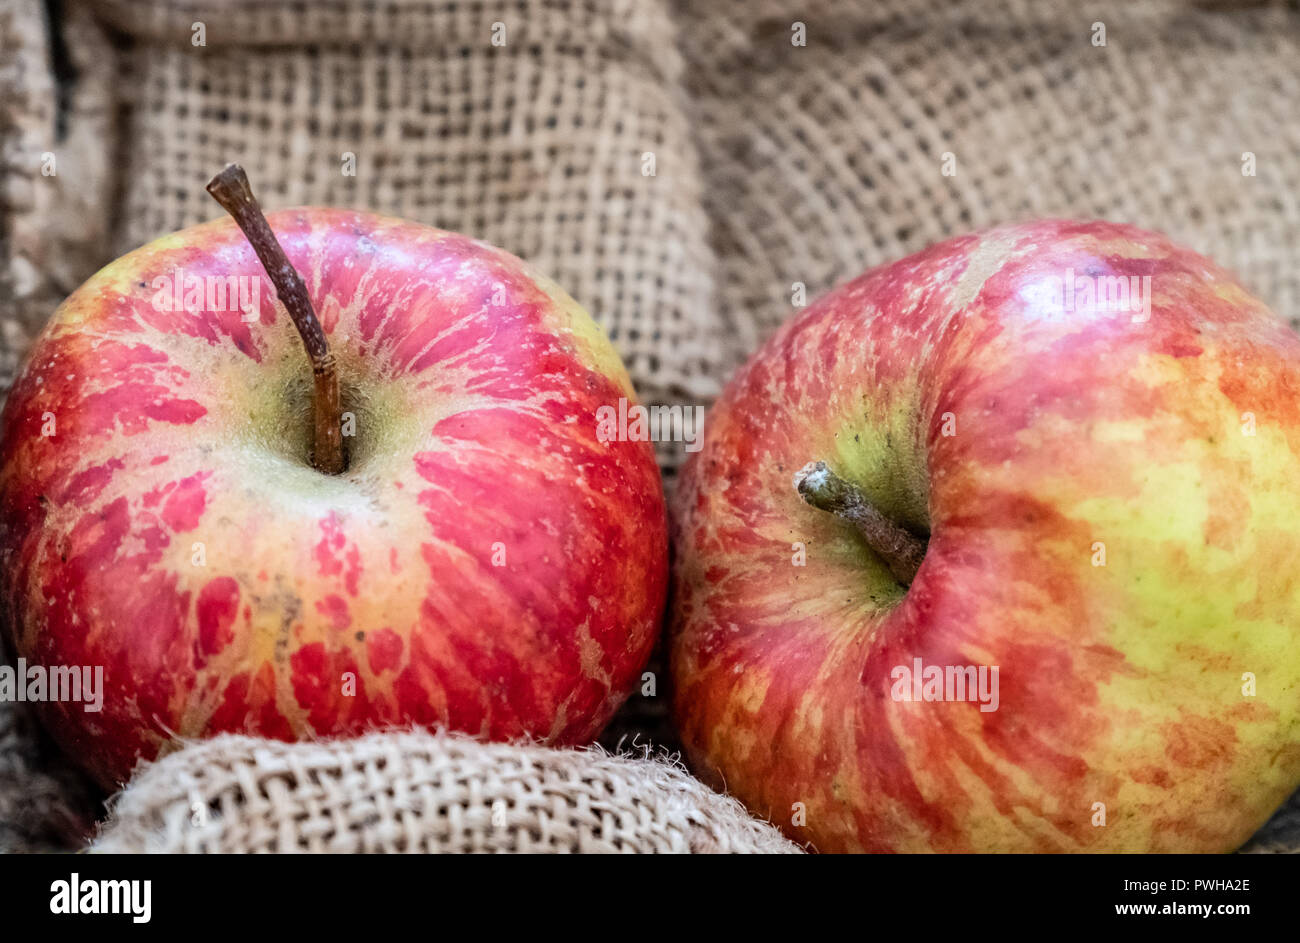 Red English eating apples.  October 2018 - Stock Image